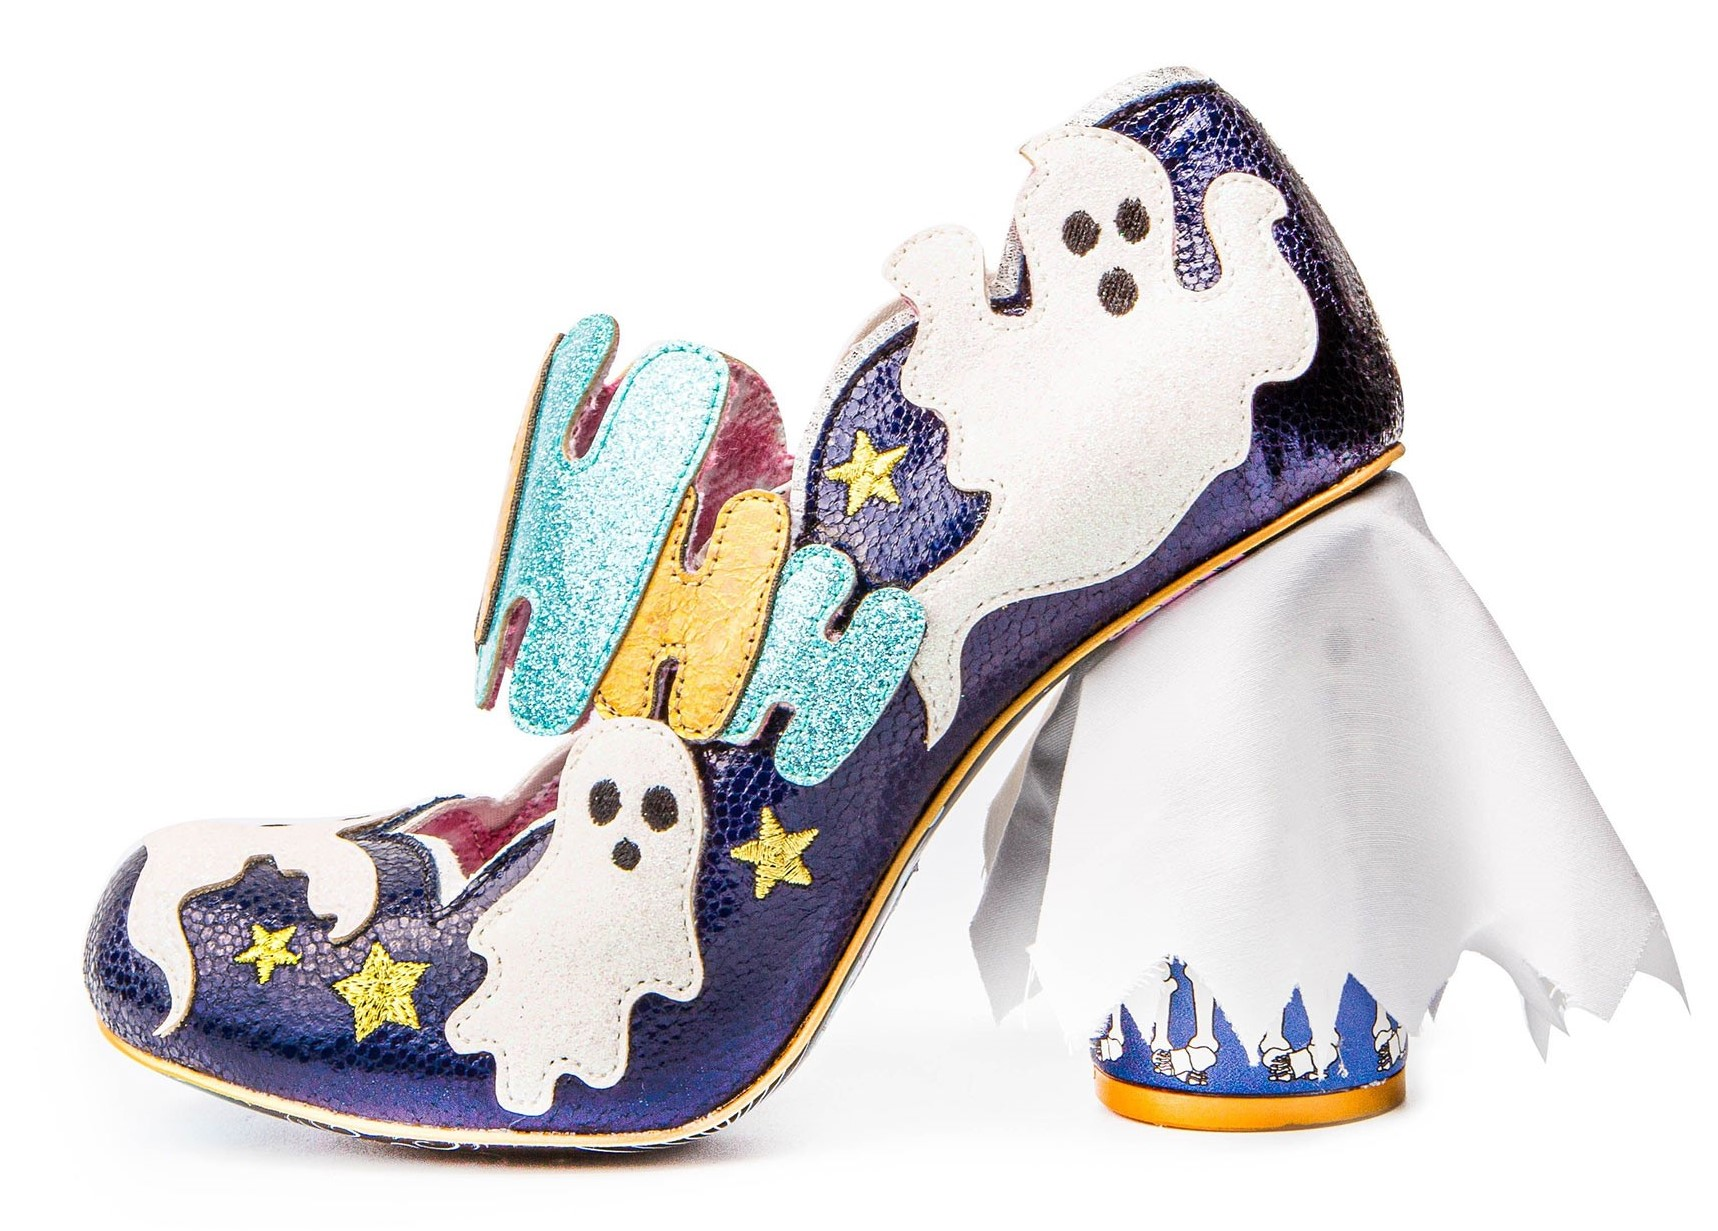 These Halloween boots and high-heel shoes are too wacky to be spooky 17